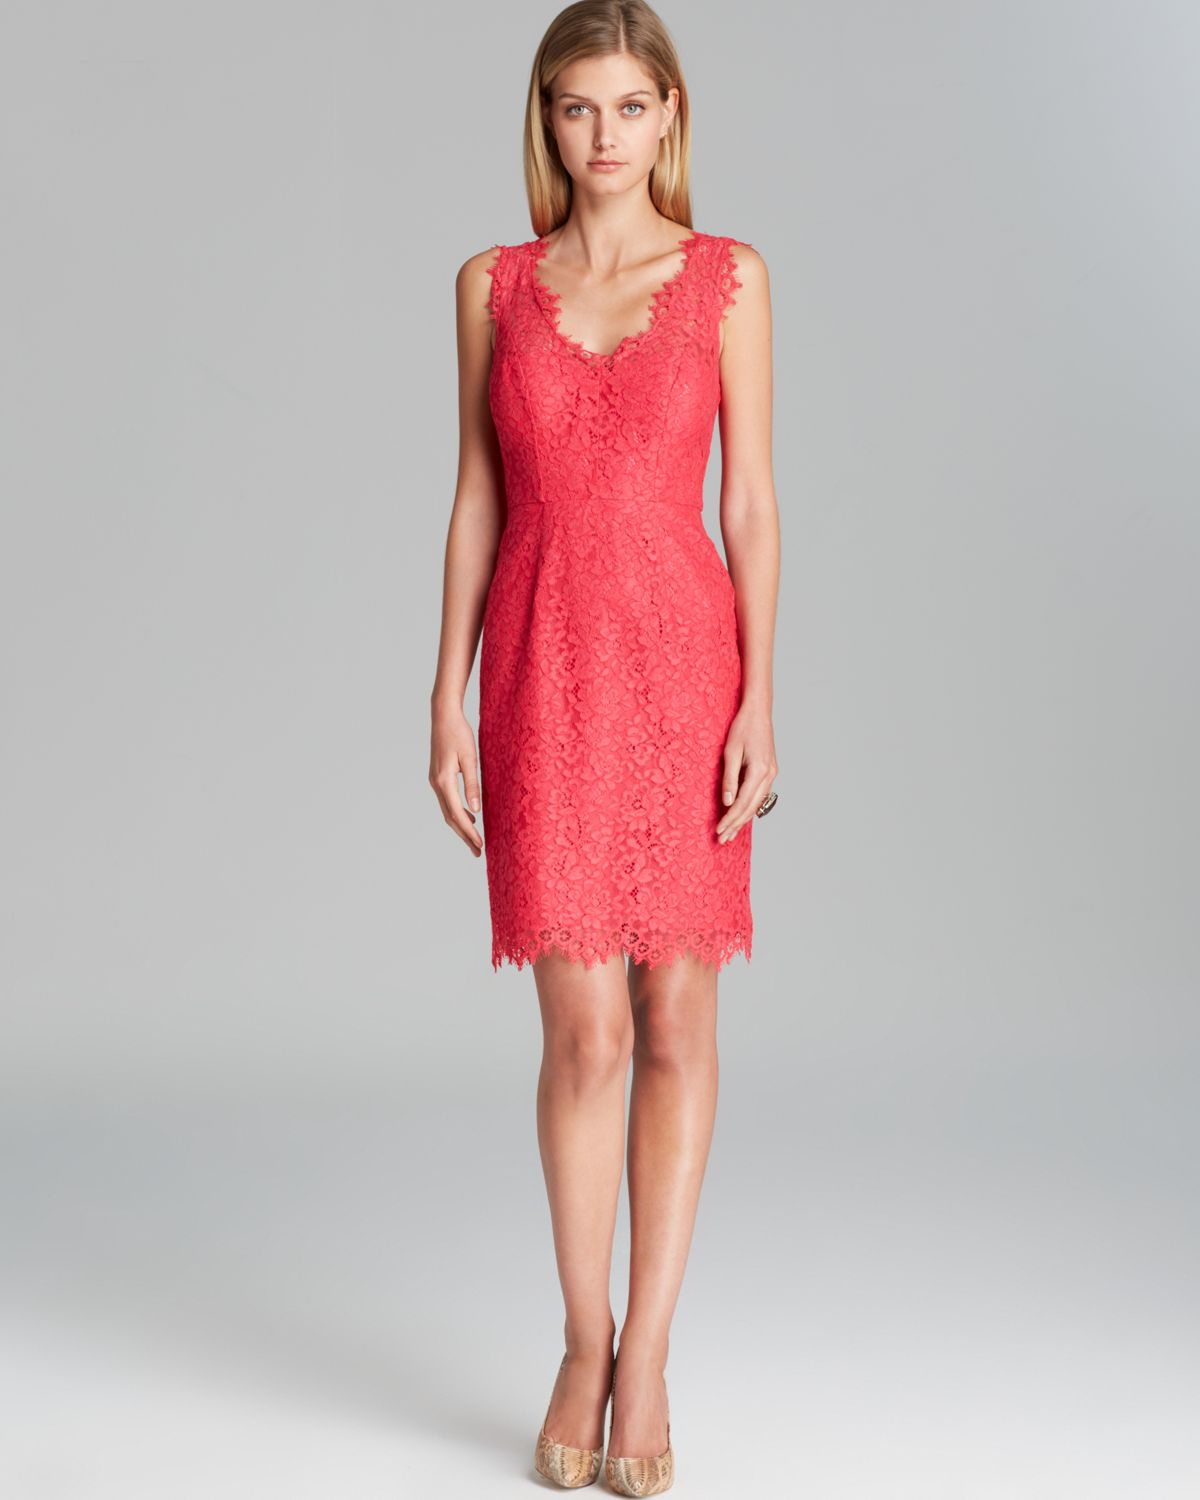 Lyst shoshanna dress rose sleeveless double v neck lace sheath in pink gallery ombrellifo Image collections